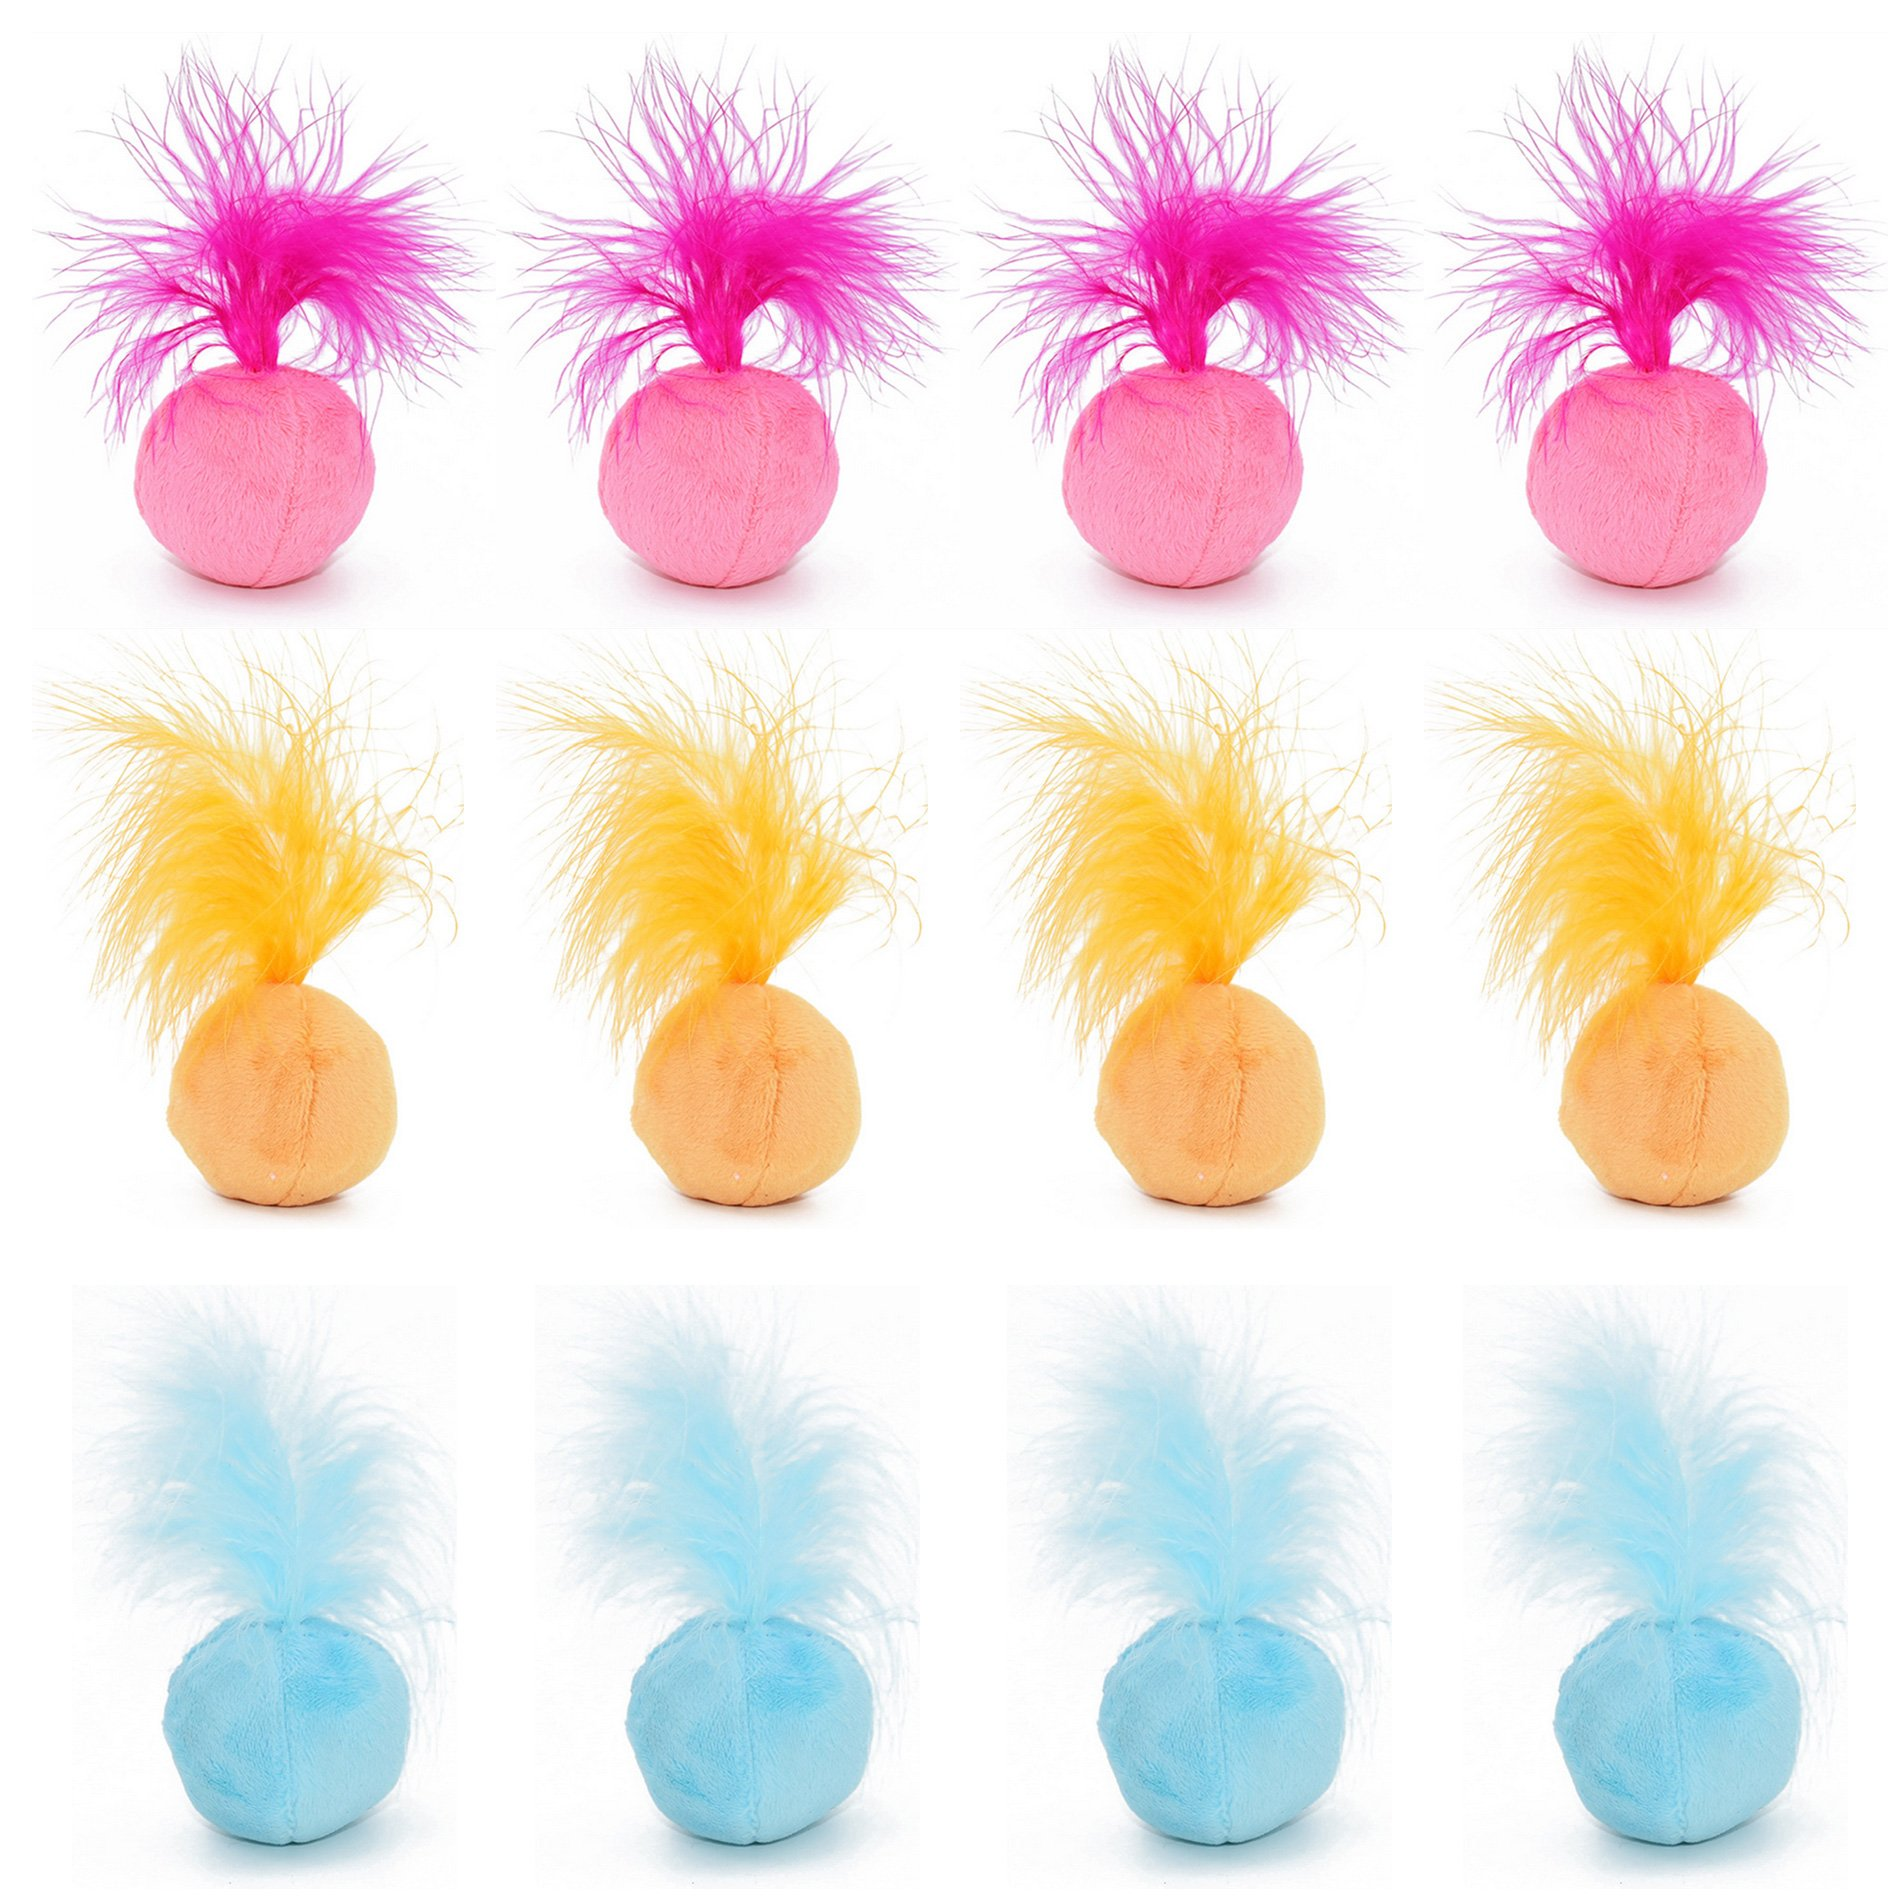 PetFavorites Furry Rattle Ball Cat Toy with Feather & Catnip - Best Interactive Pom Pom Balls for Cats, Soft/Lightweight/2 Inch, 12 Pack.